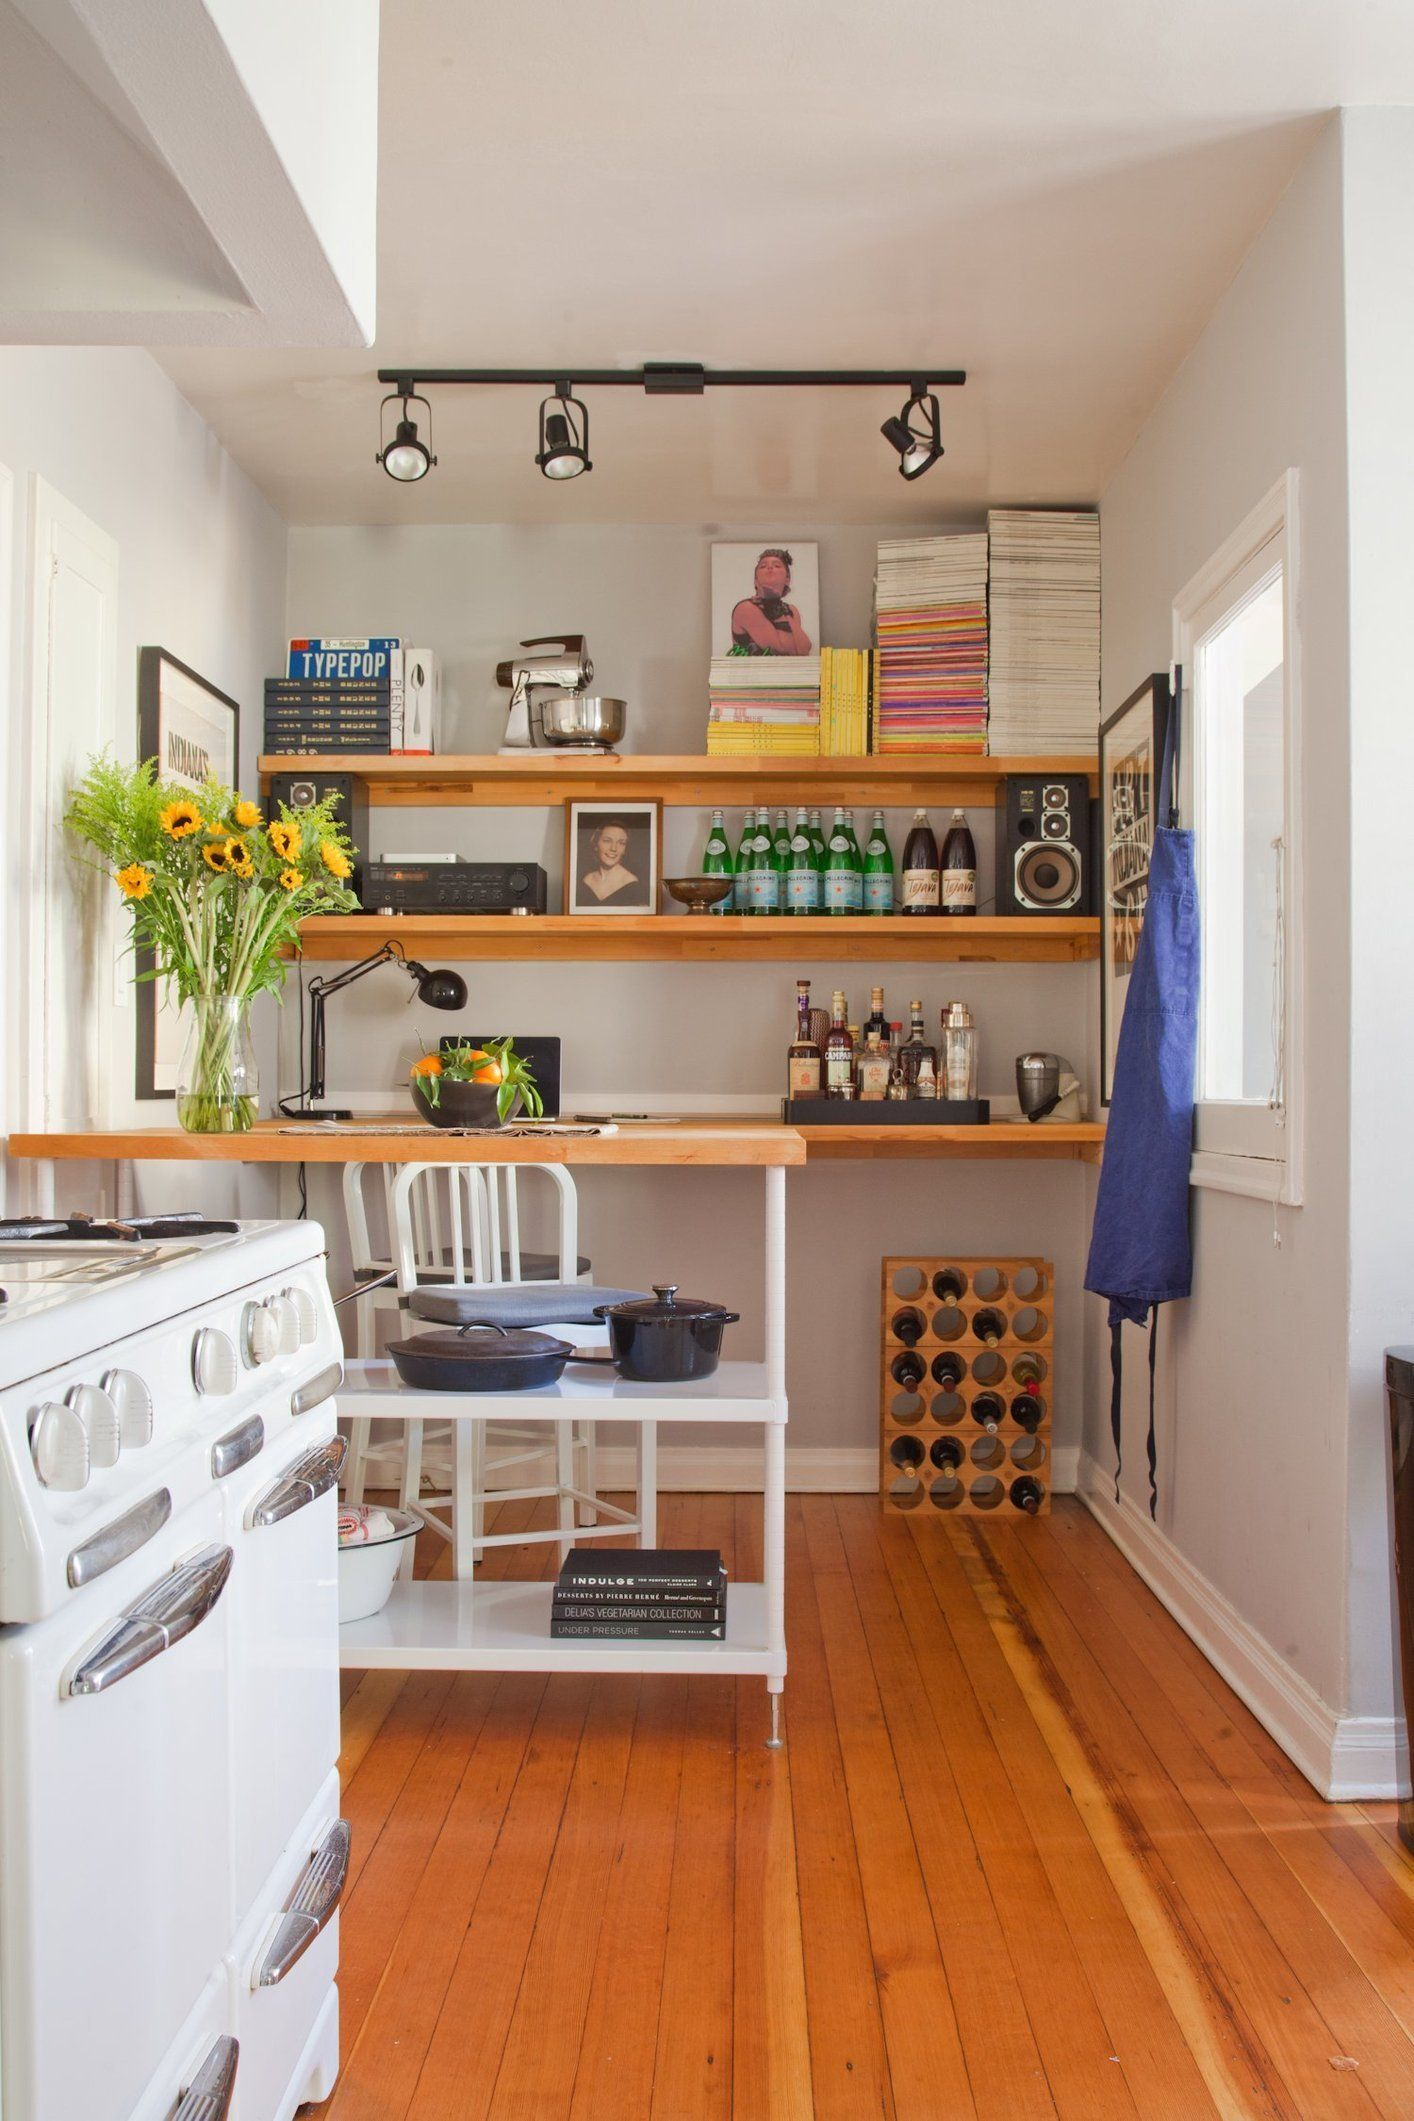 kitchen office organization. 6 Ways To Make A Small Kitchen Look Infinitely Bigger Office Organization P